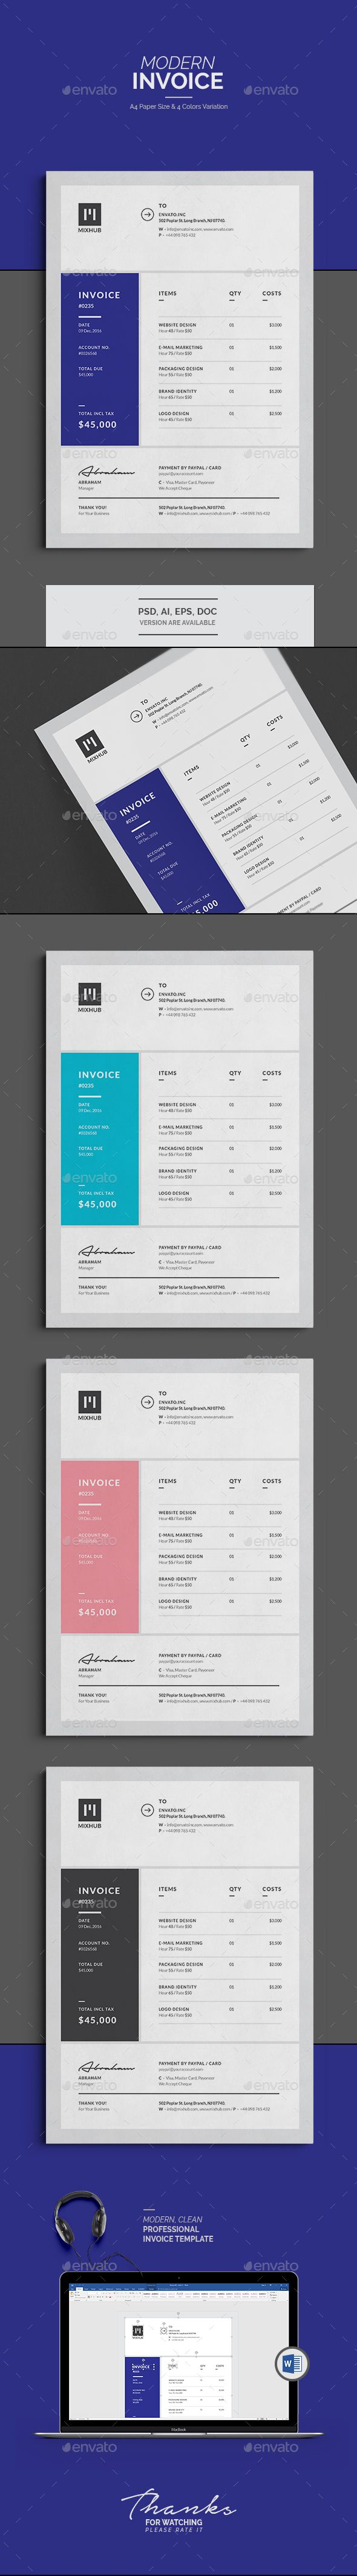 1000 ideas about invoice template on pinterest for Https invoice generator com 1